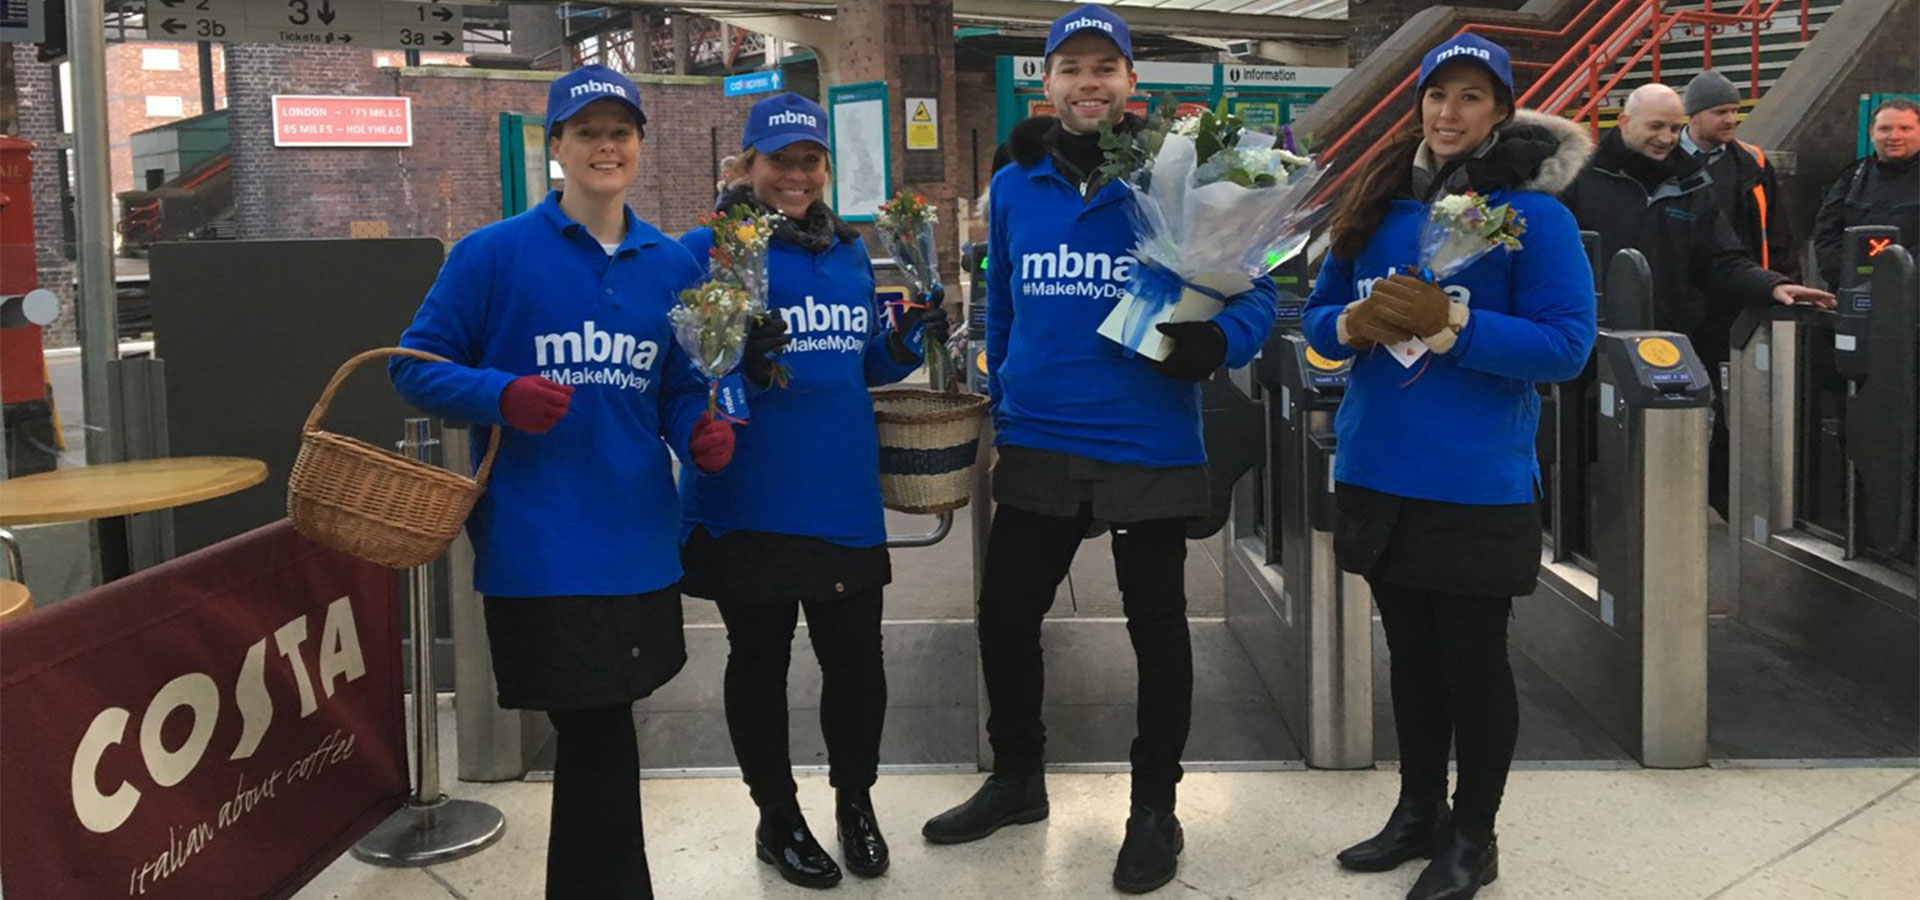 MBNA Promotional event